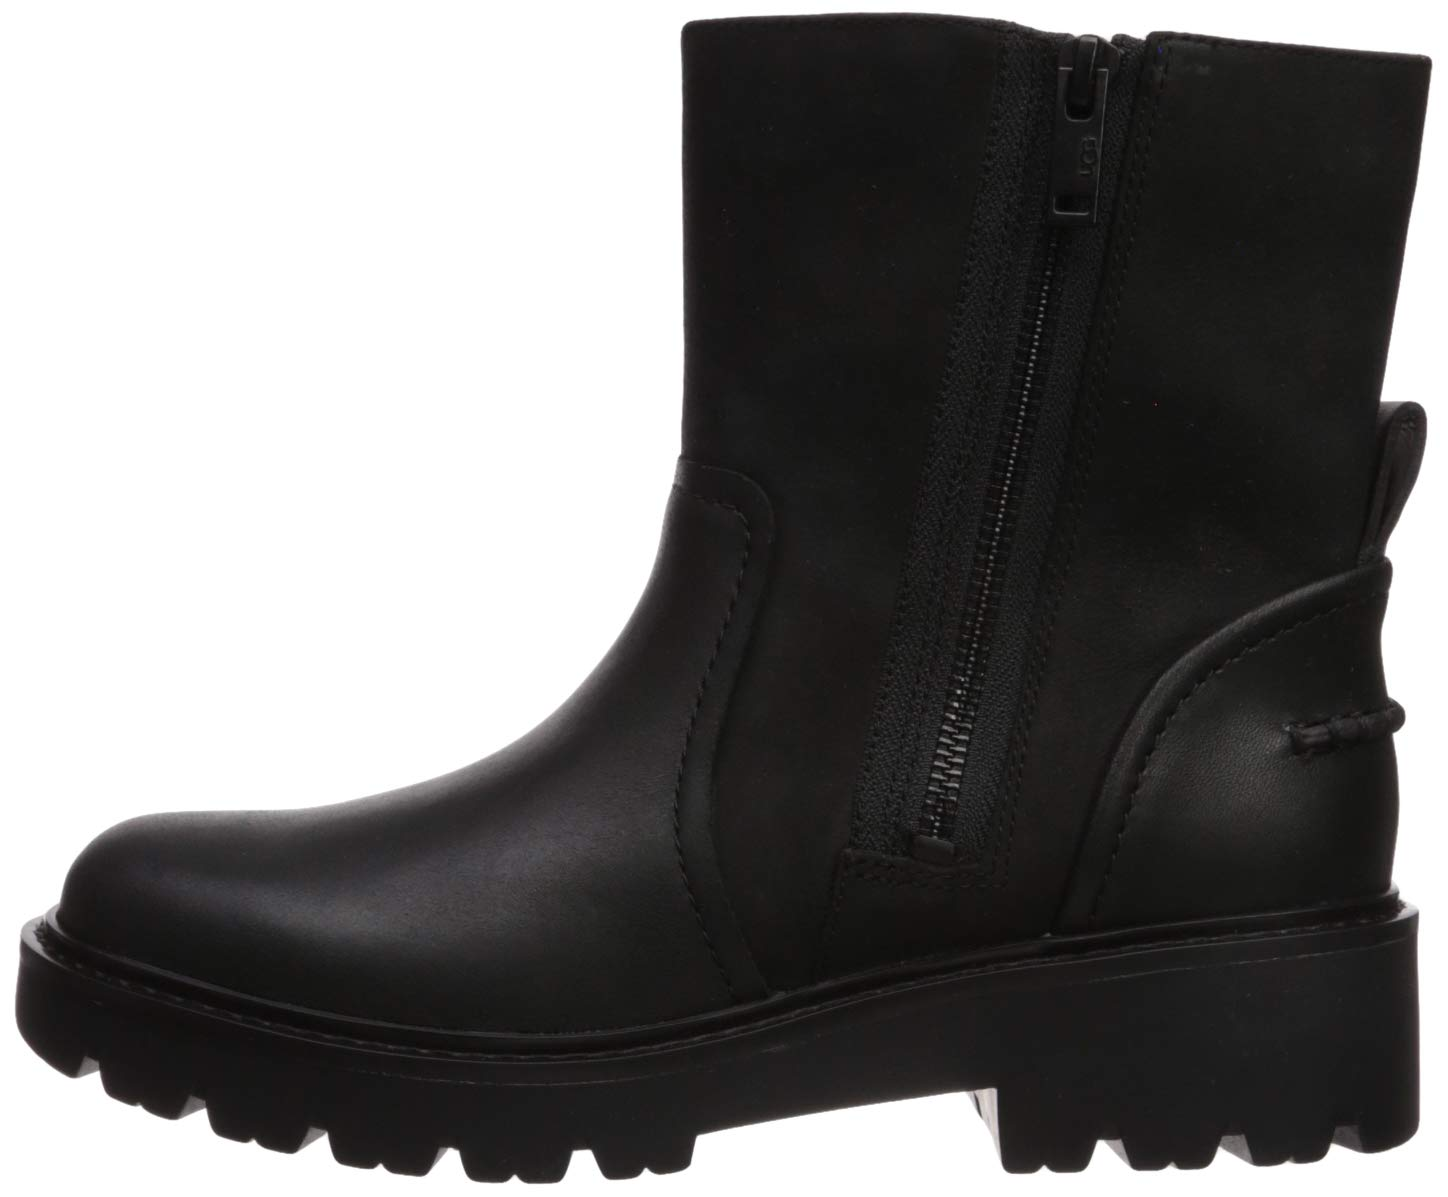 UGG Women's Polk Combat Boot, Black, 7.5 M US 5